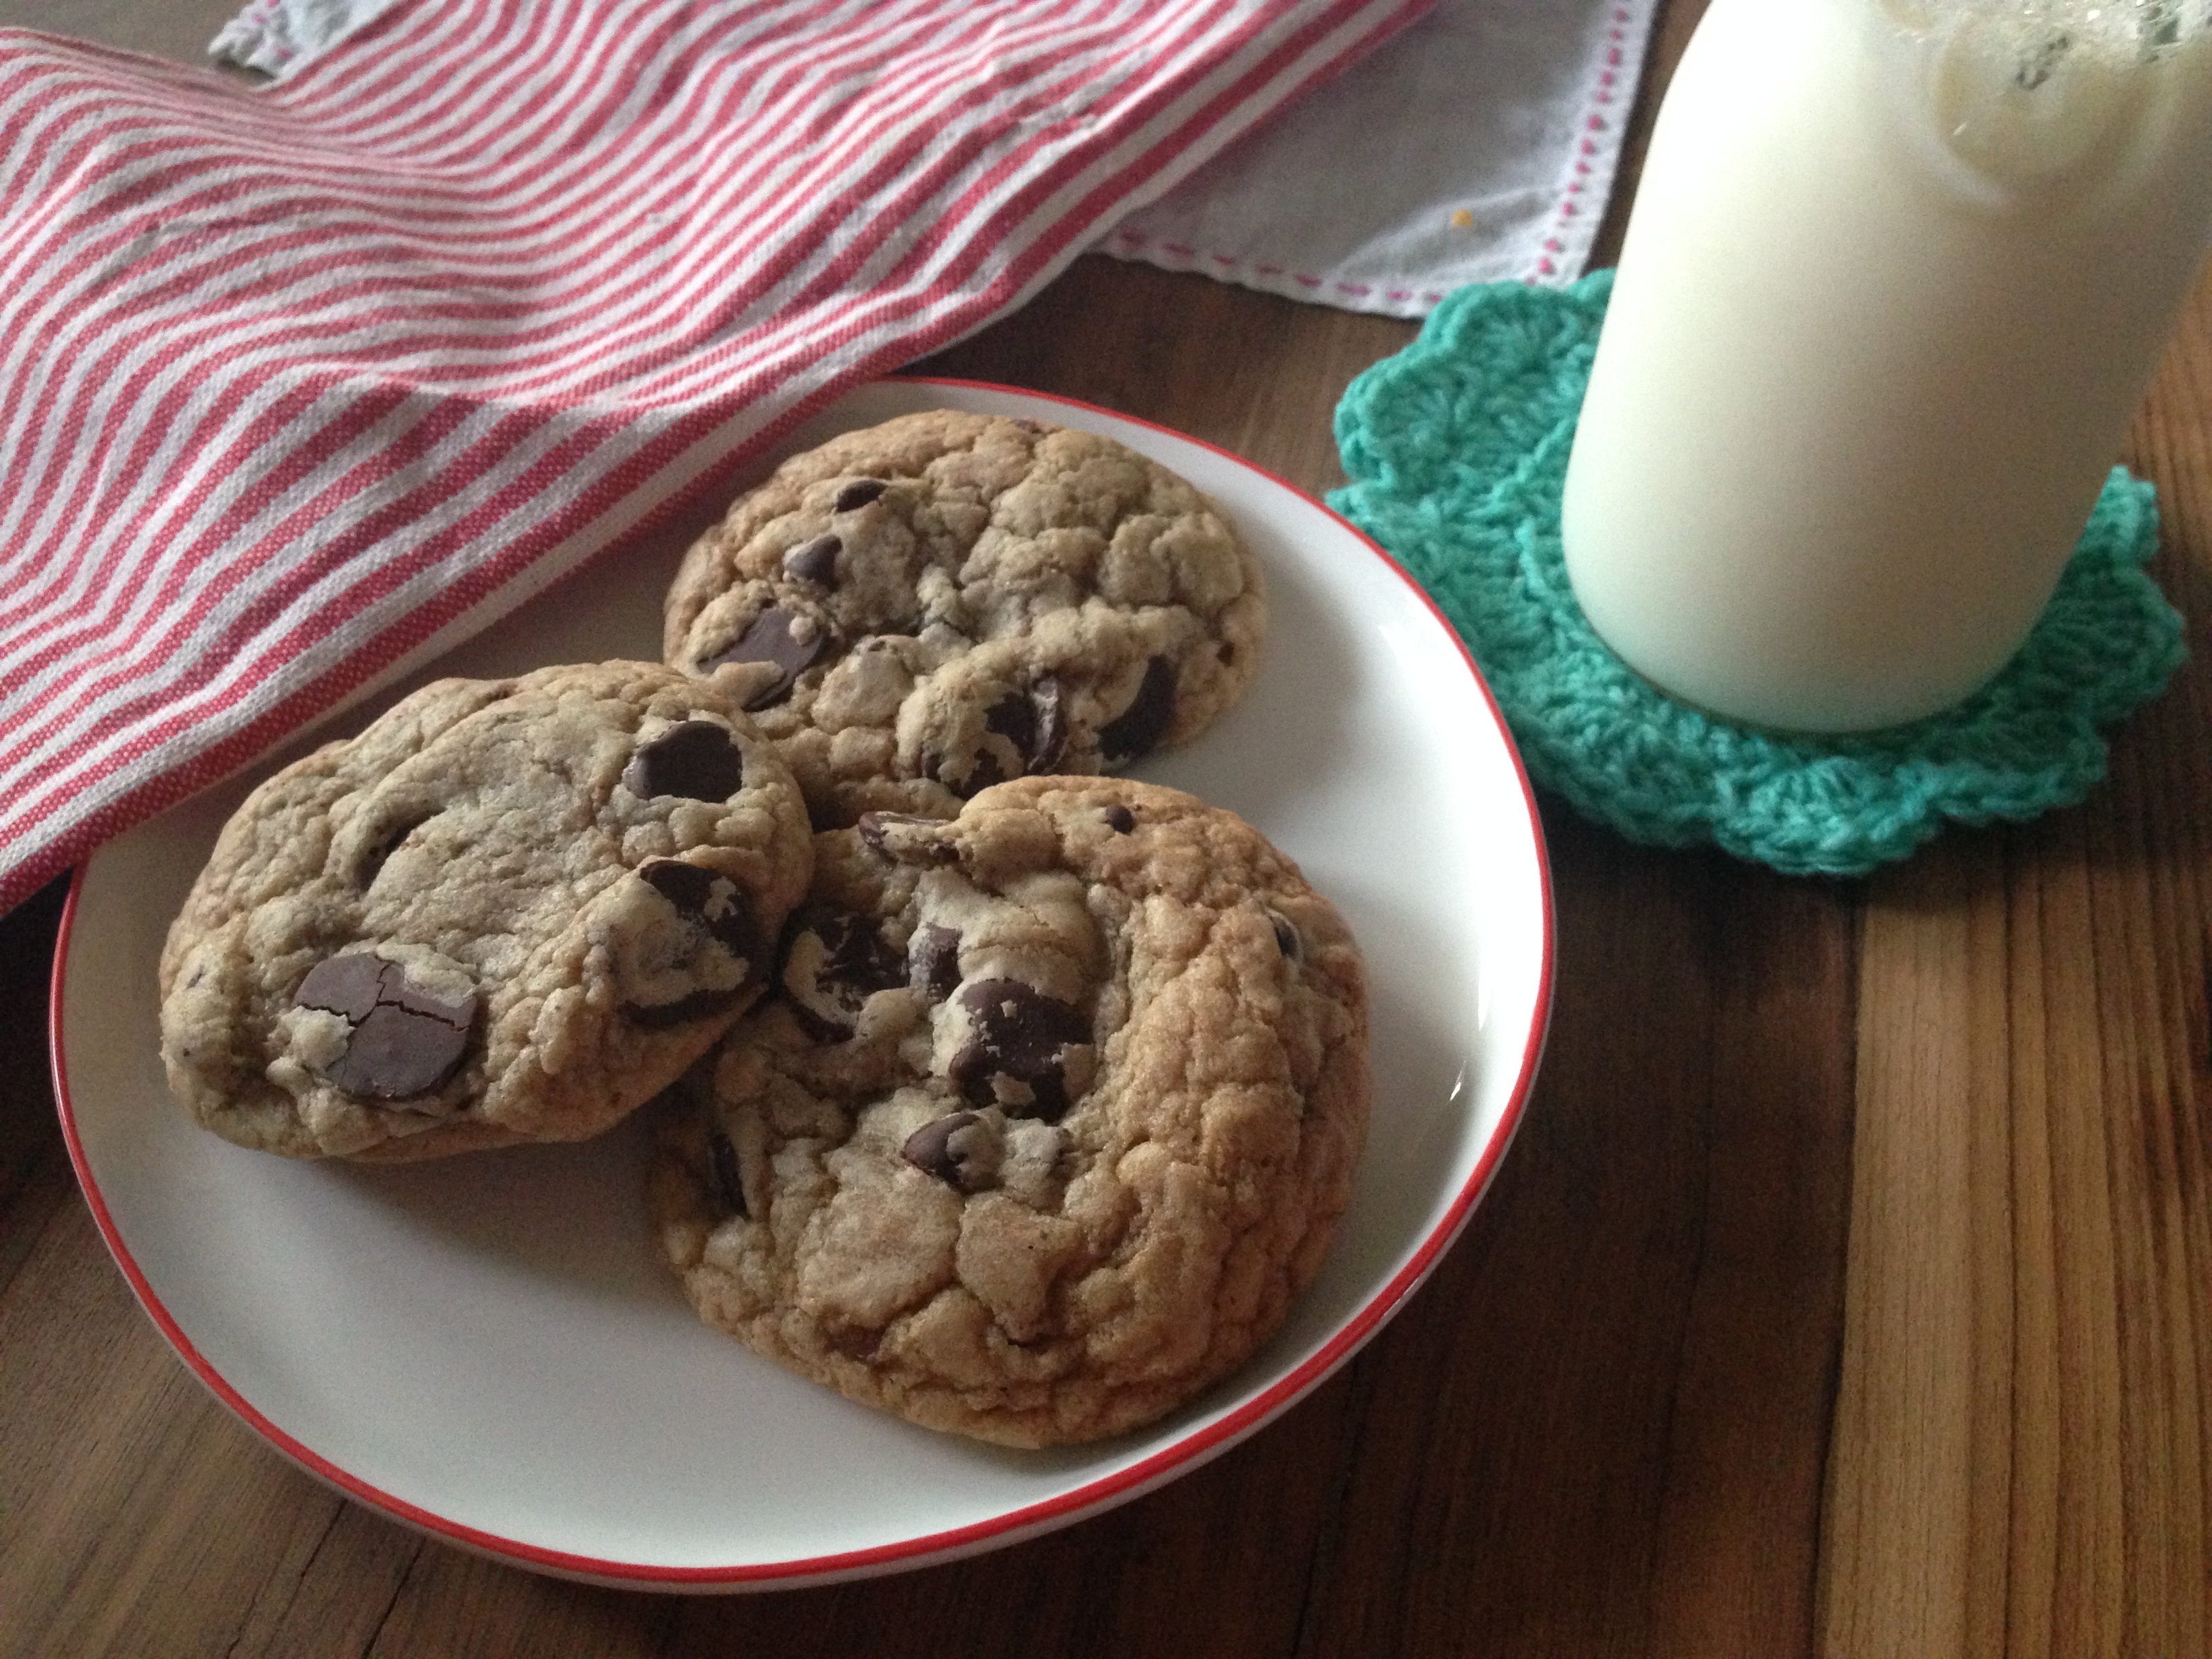 Recipe Review ((AND RECIPE!!)): Thick & Chewy Chocolate Chip Cookies from Cook's Country Magazine